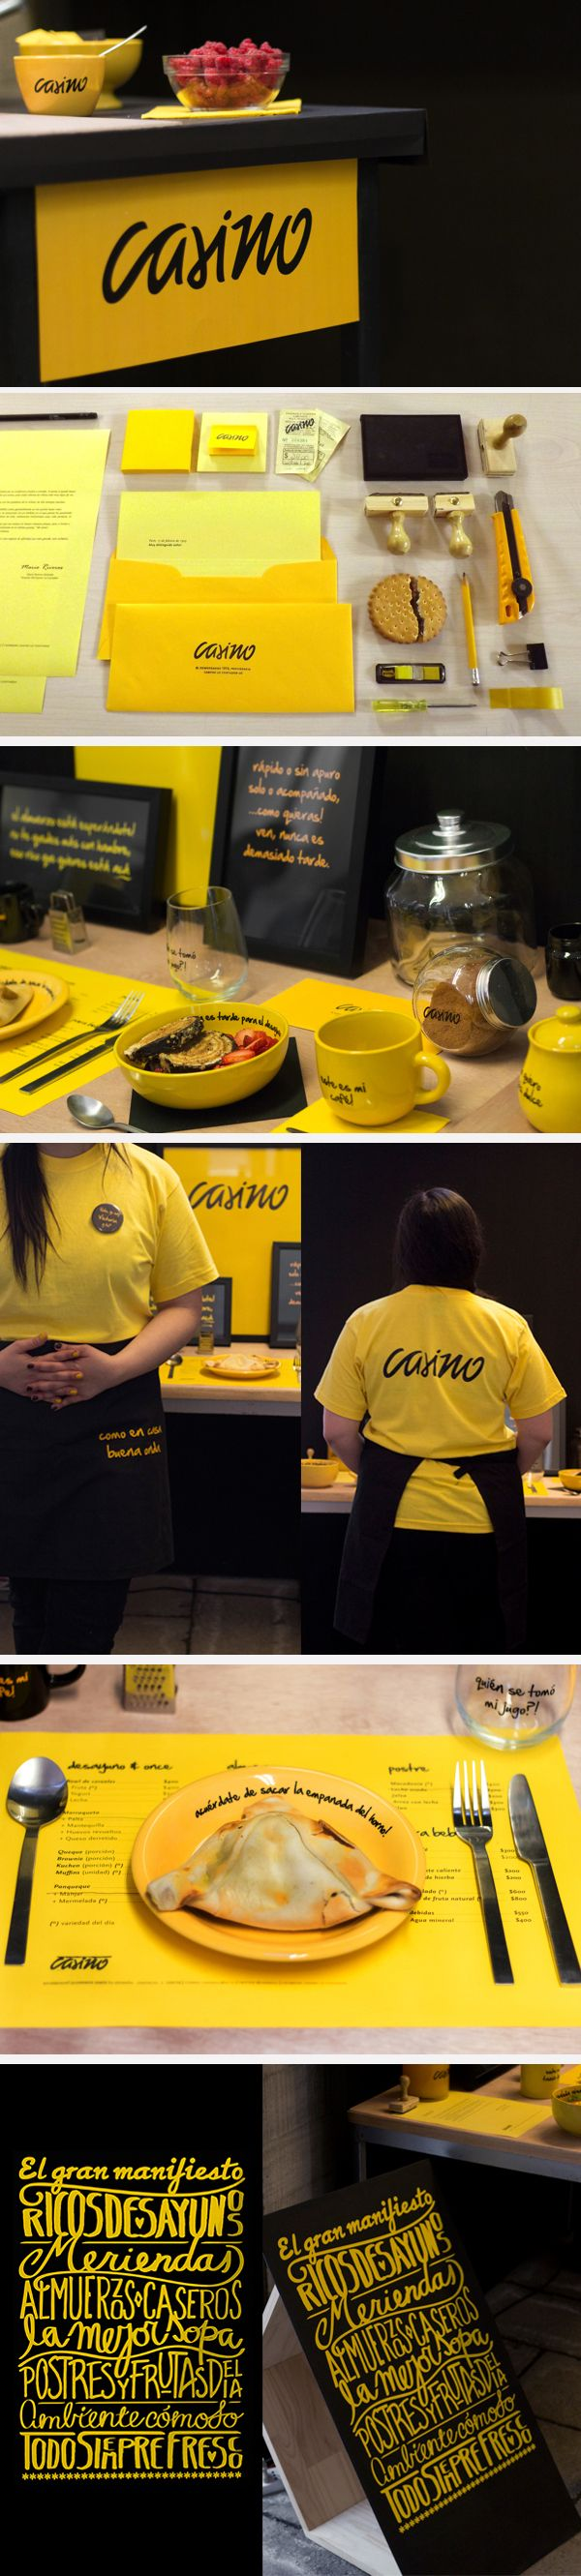 Casino food place © Victoria Gallardo ı{psychology and dieting, yellow: warm colours like red and yellow stimulate the appetite - and family quarrels}. If you like UX, design, or design thinking, check out theuxblog.com